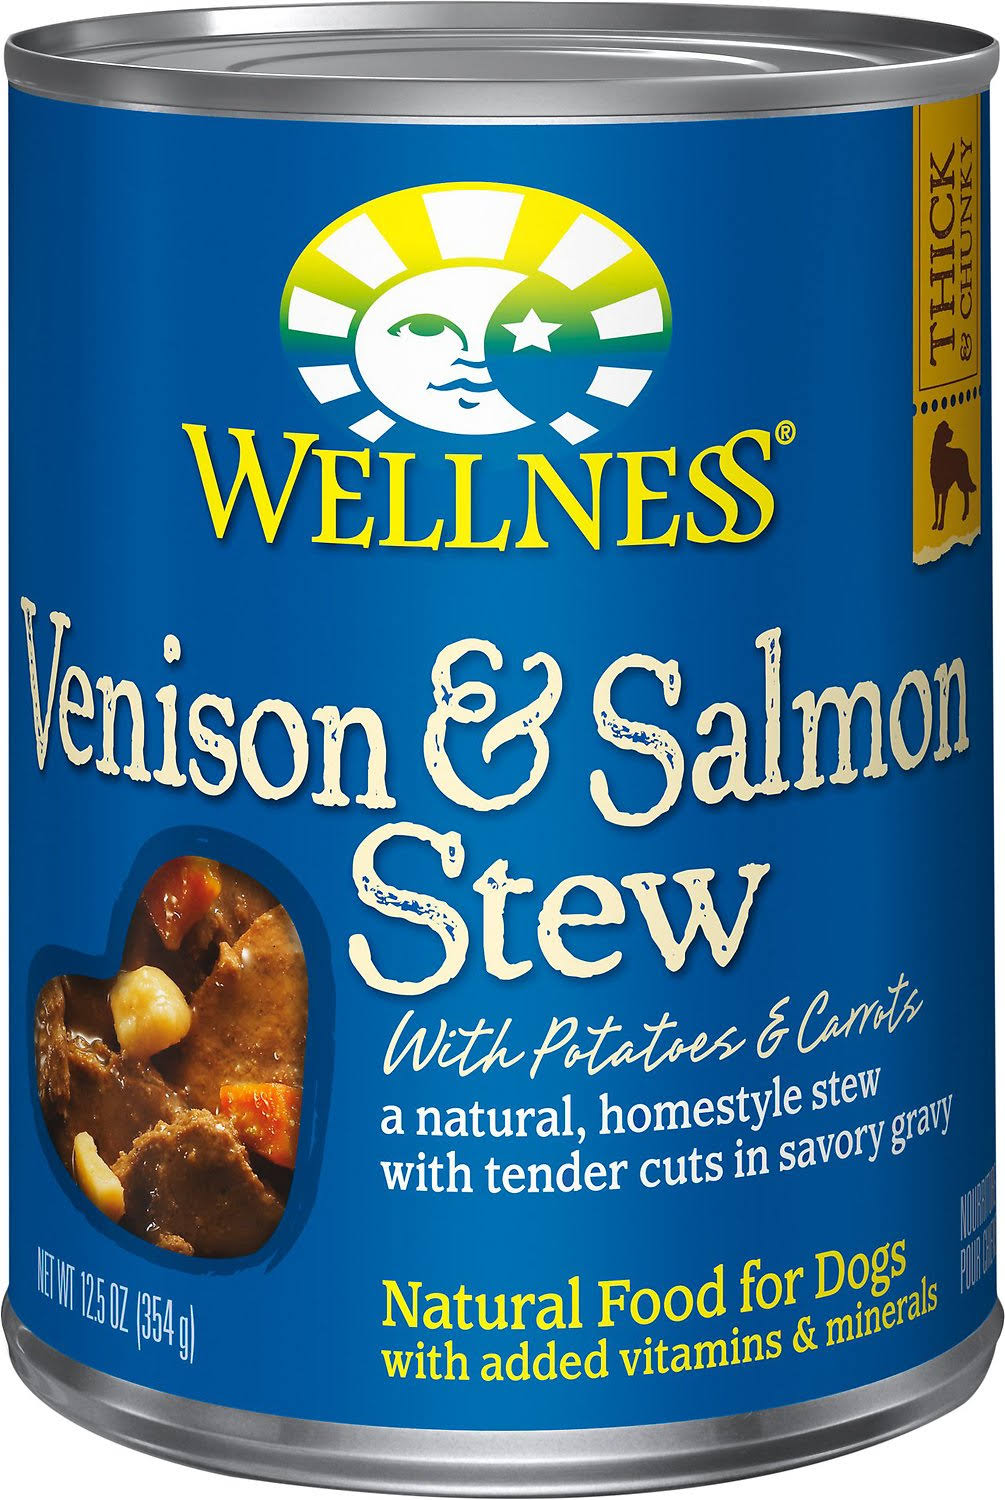 Wellness Natural Food for Dogs - Venison & Salmon Stew with Potatoes Carrots